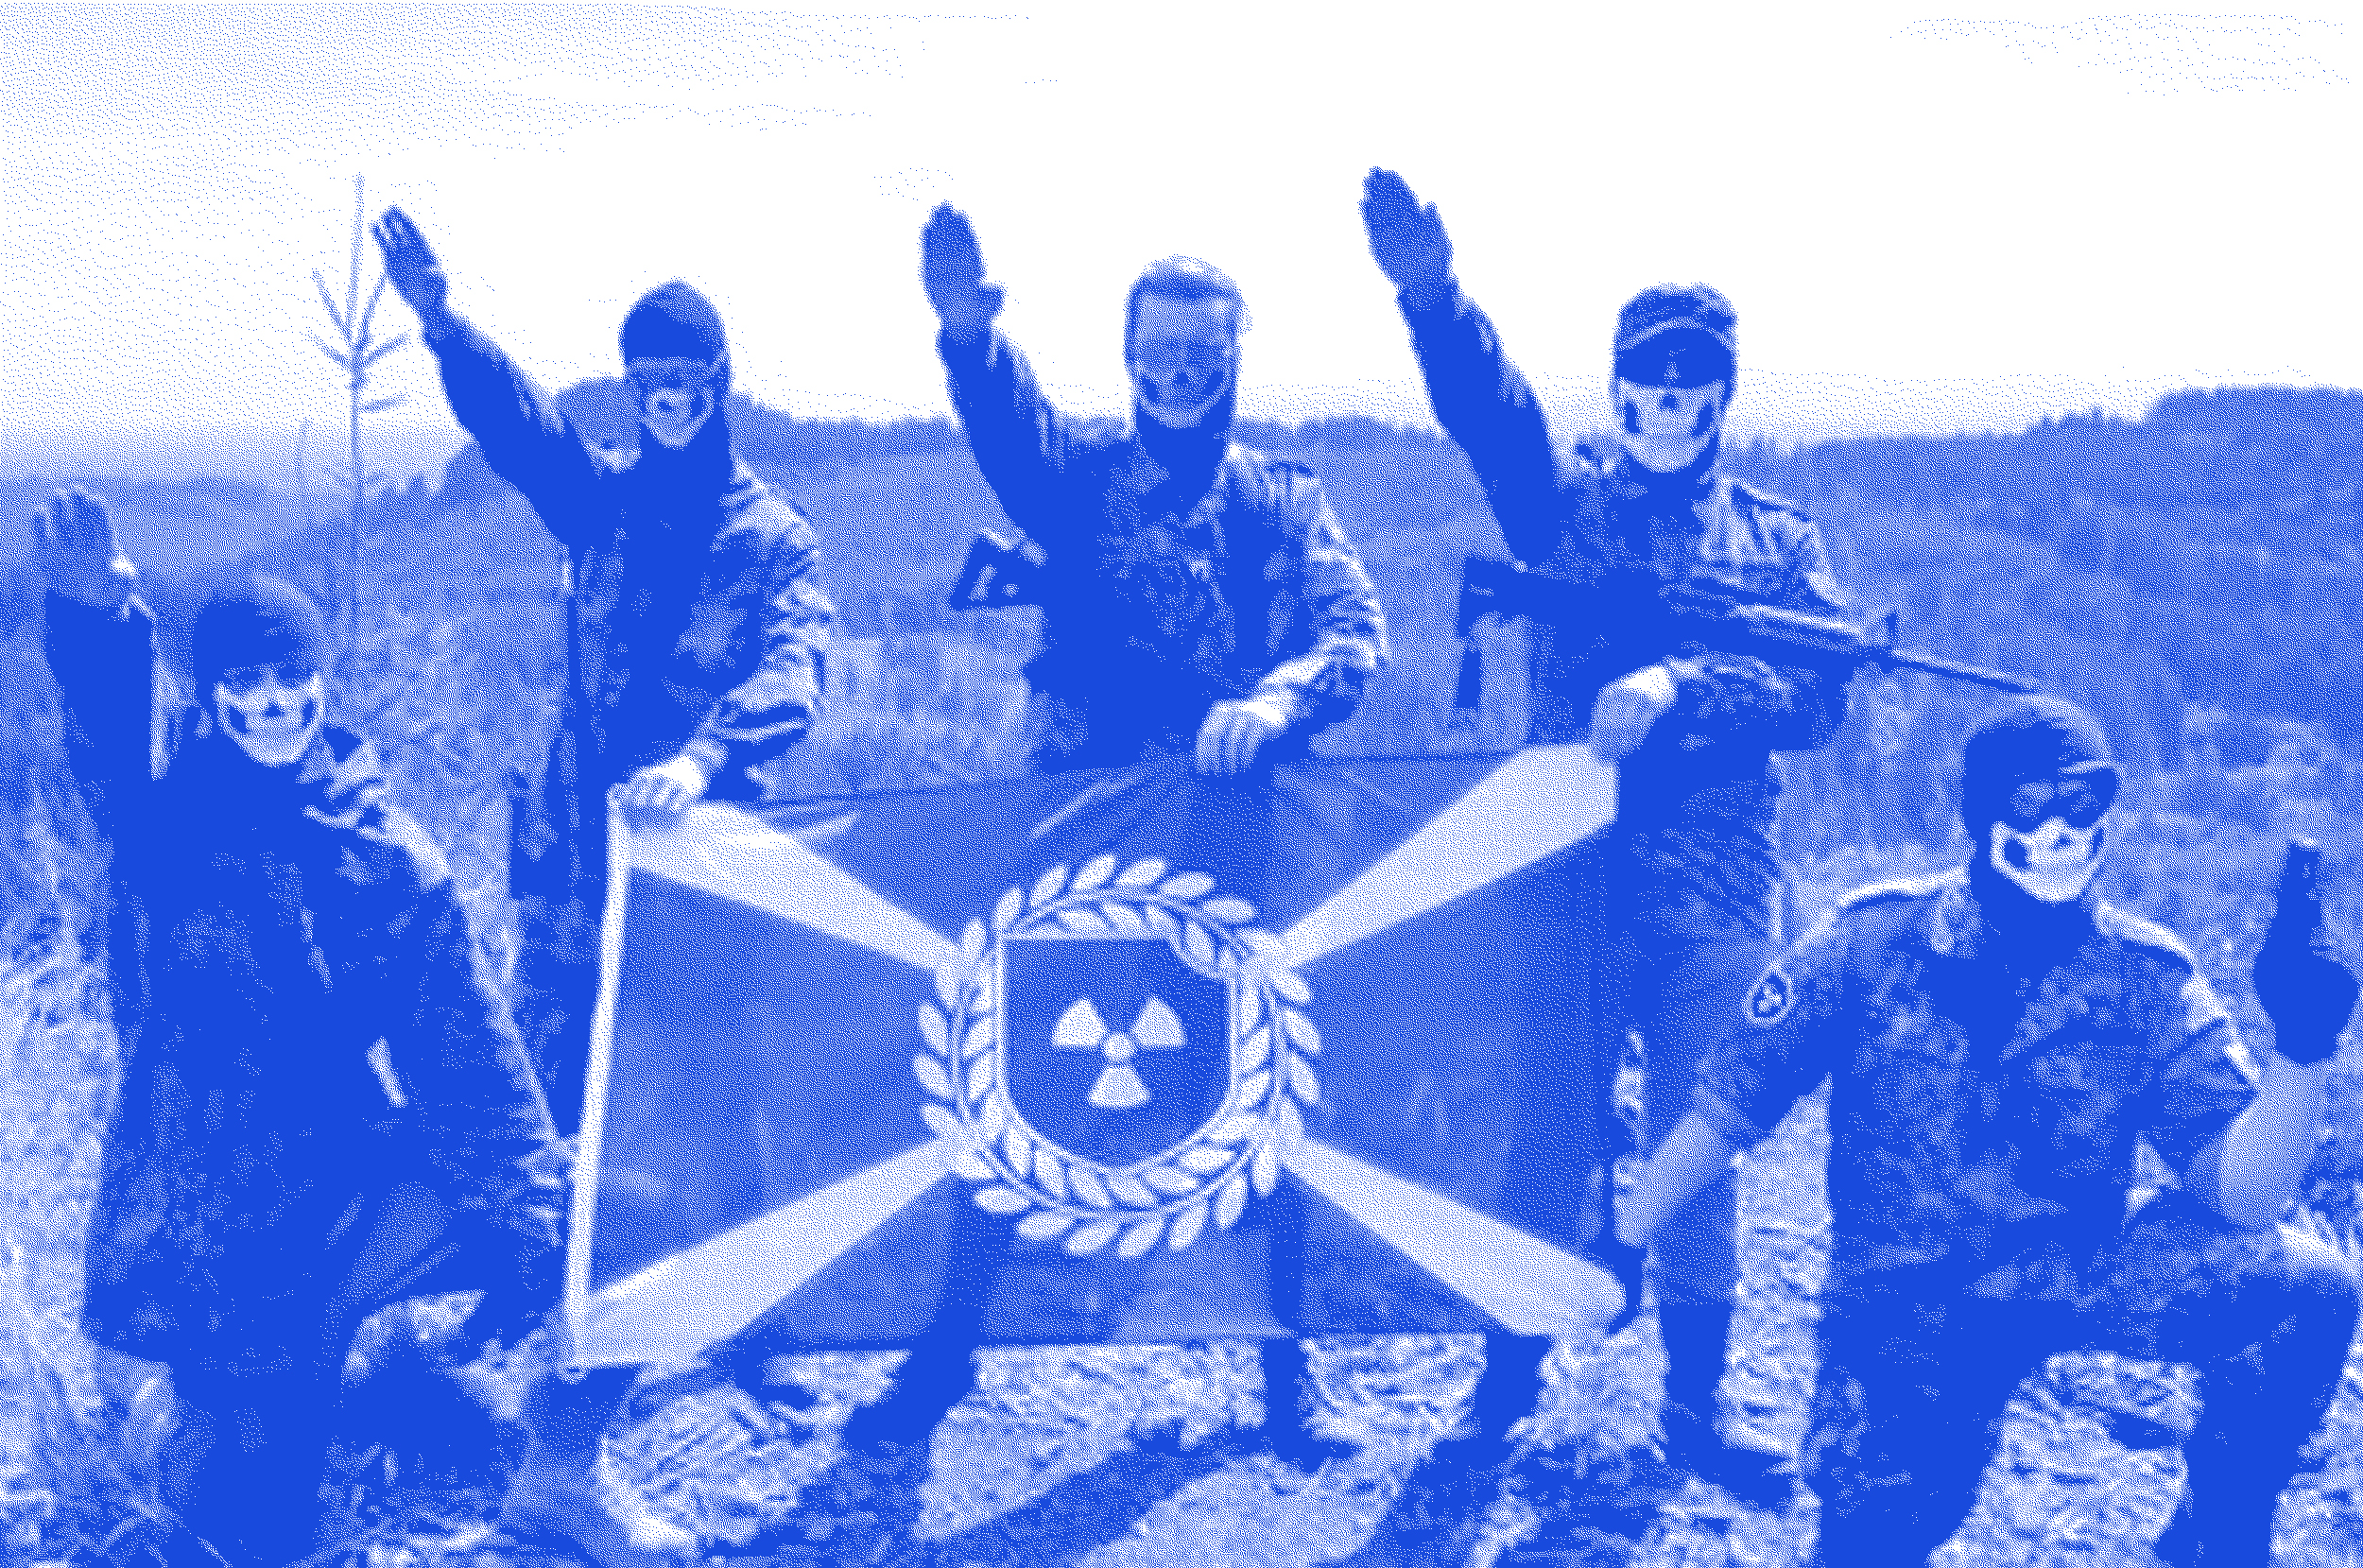 Members of  Atomwaffen  throw sieg heil salutes, while posing with their weapons and flag.